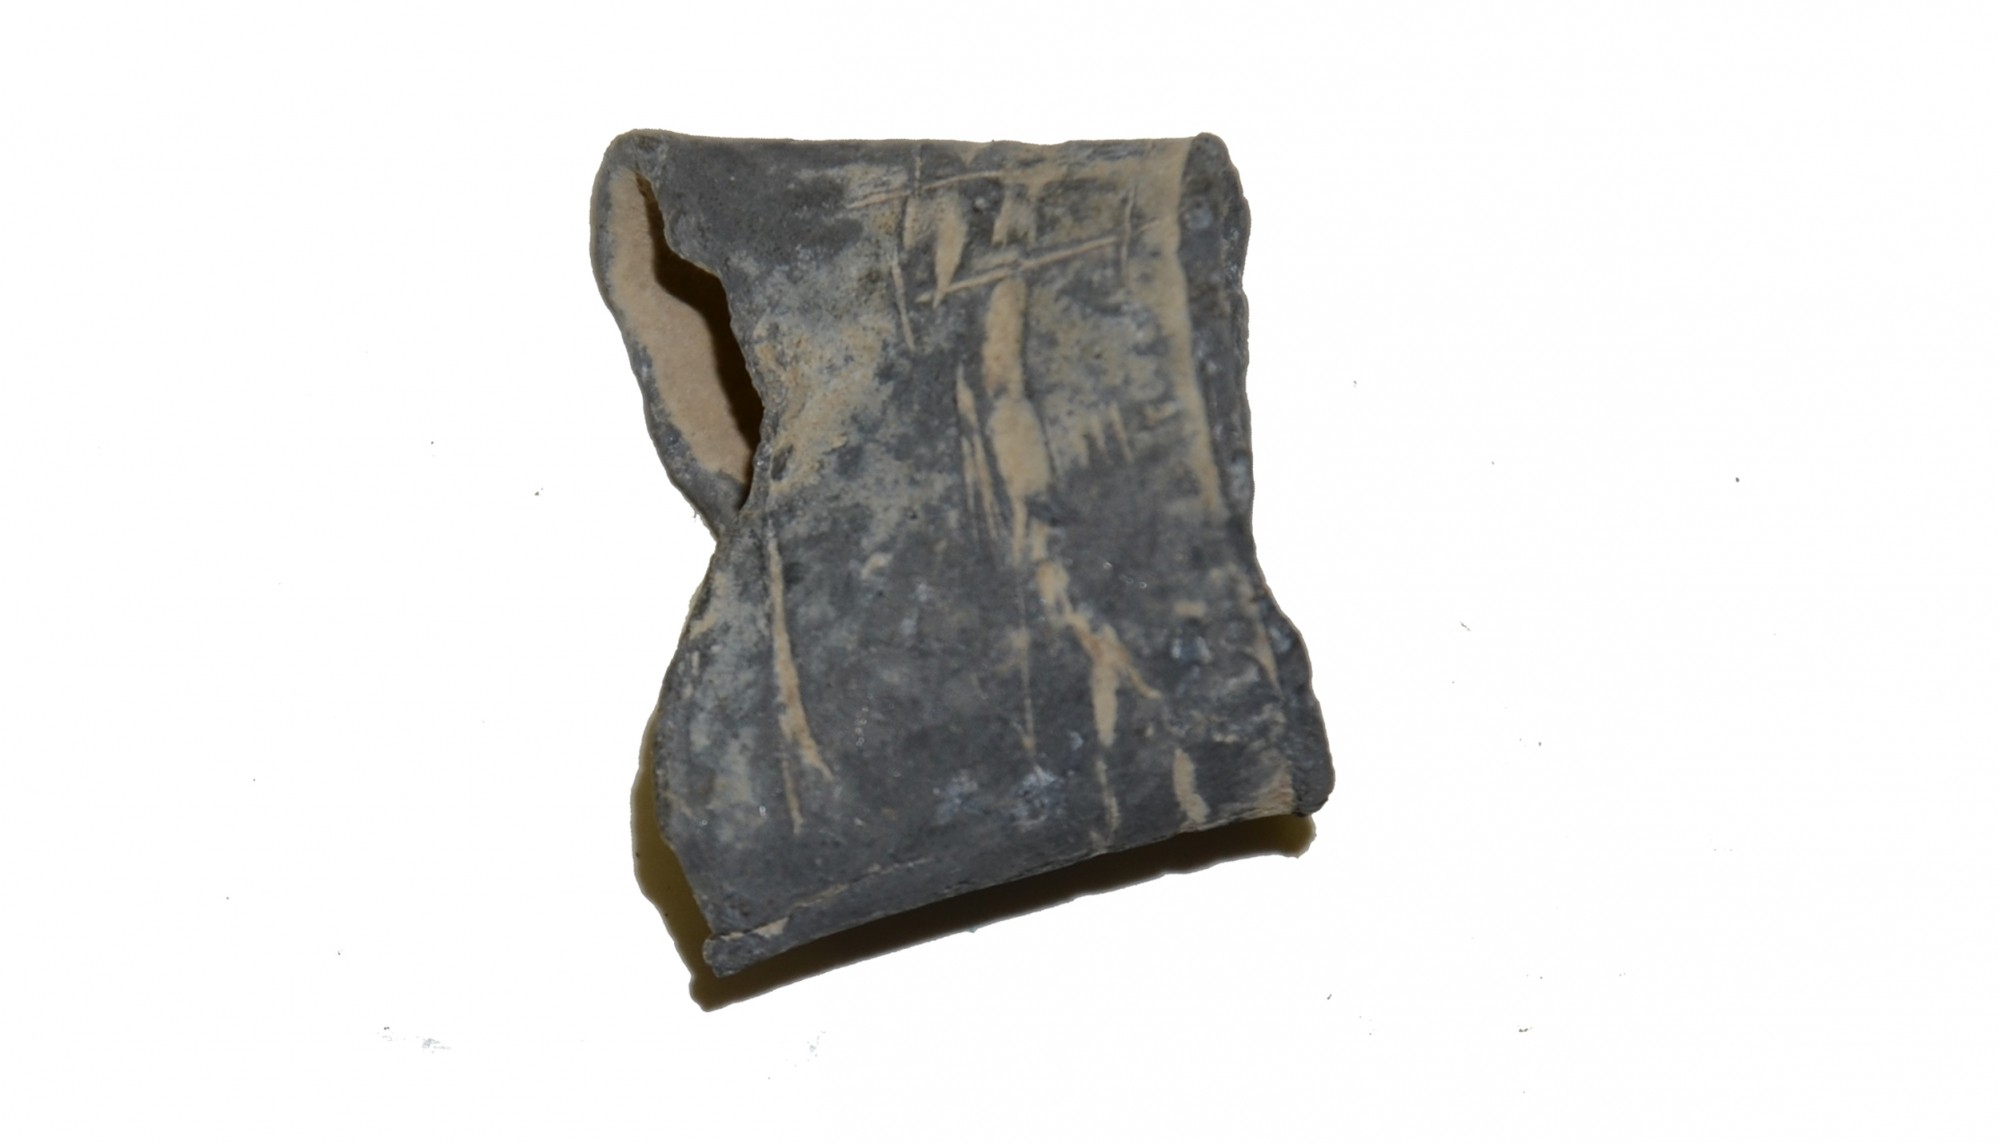 US/CS CANTEEN SPOUT RECOVERED AT GETTYSBURG